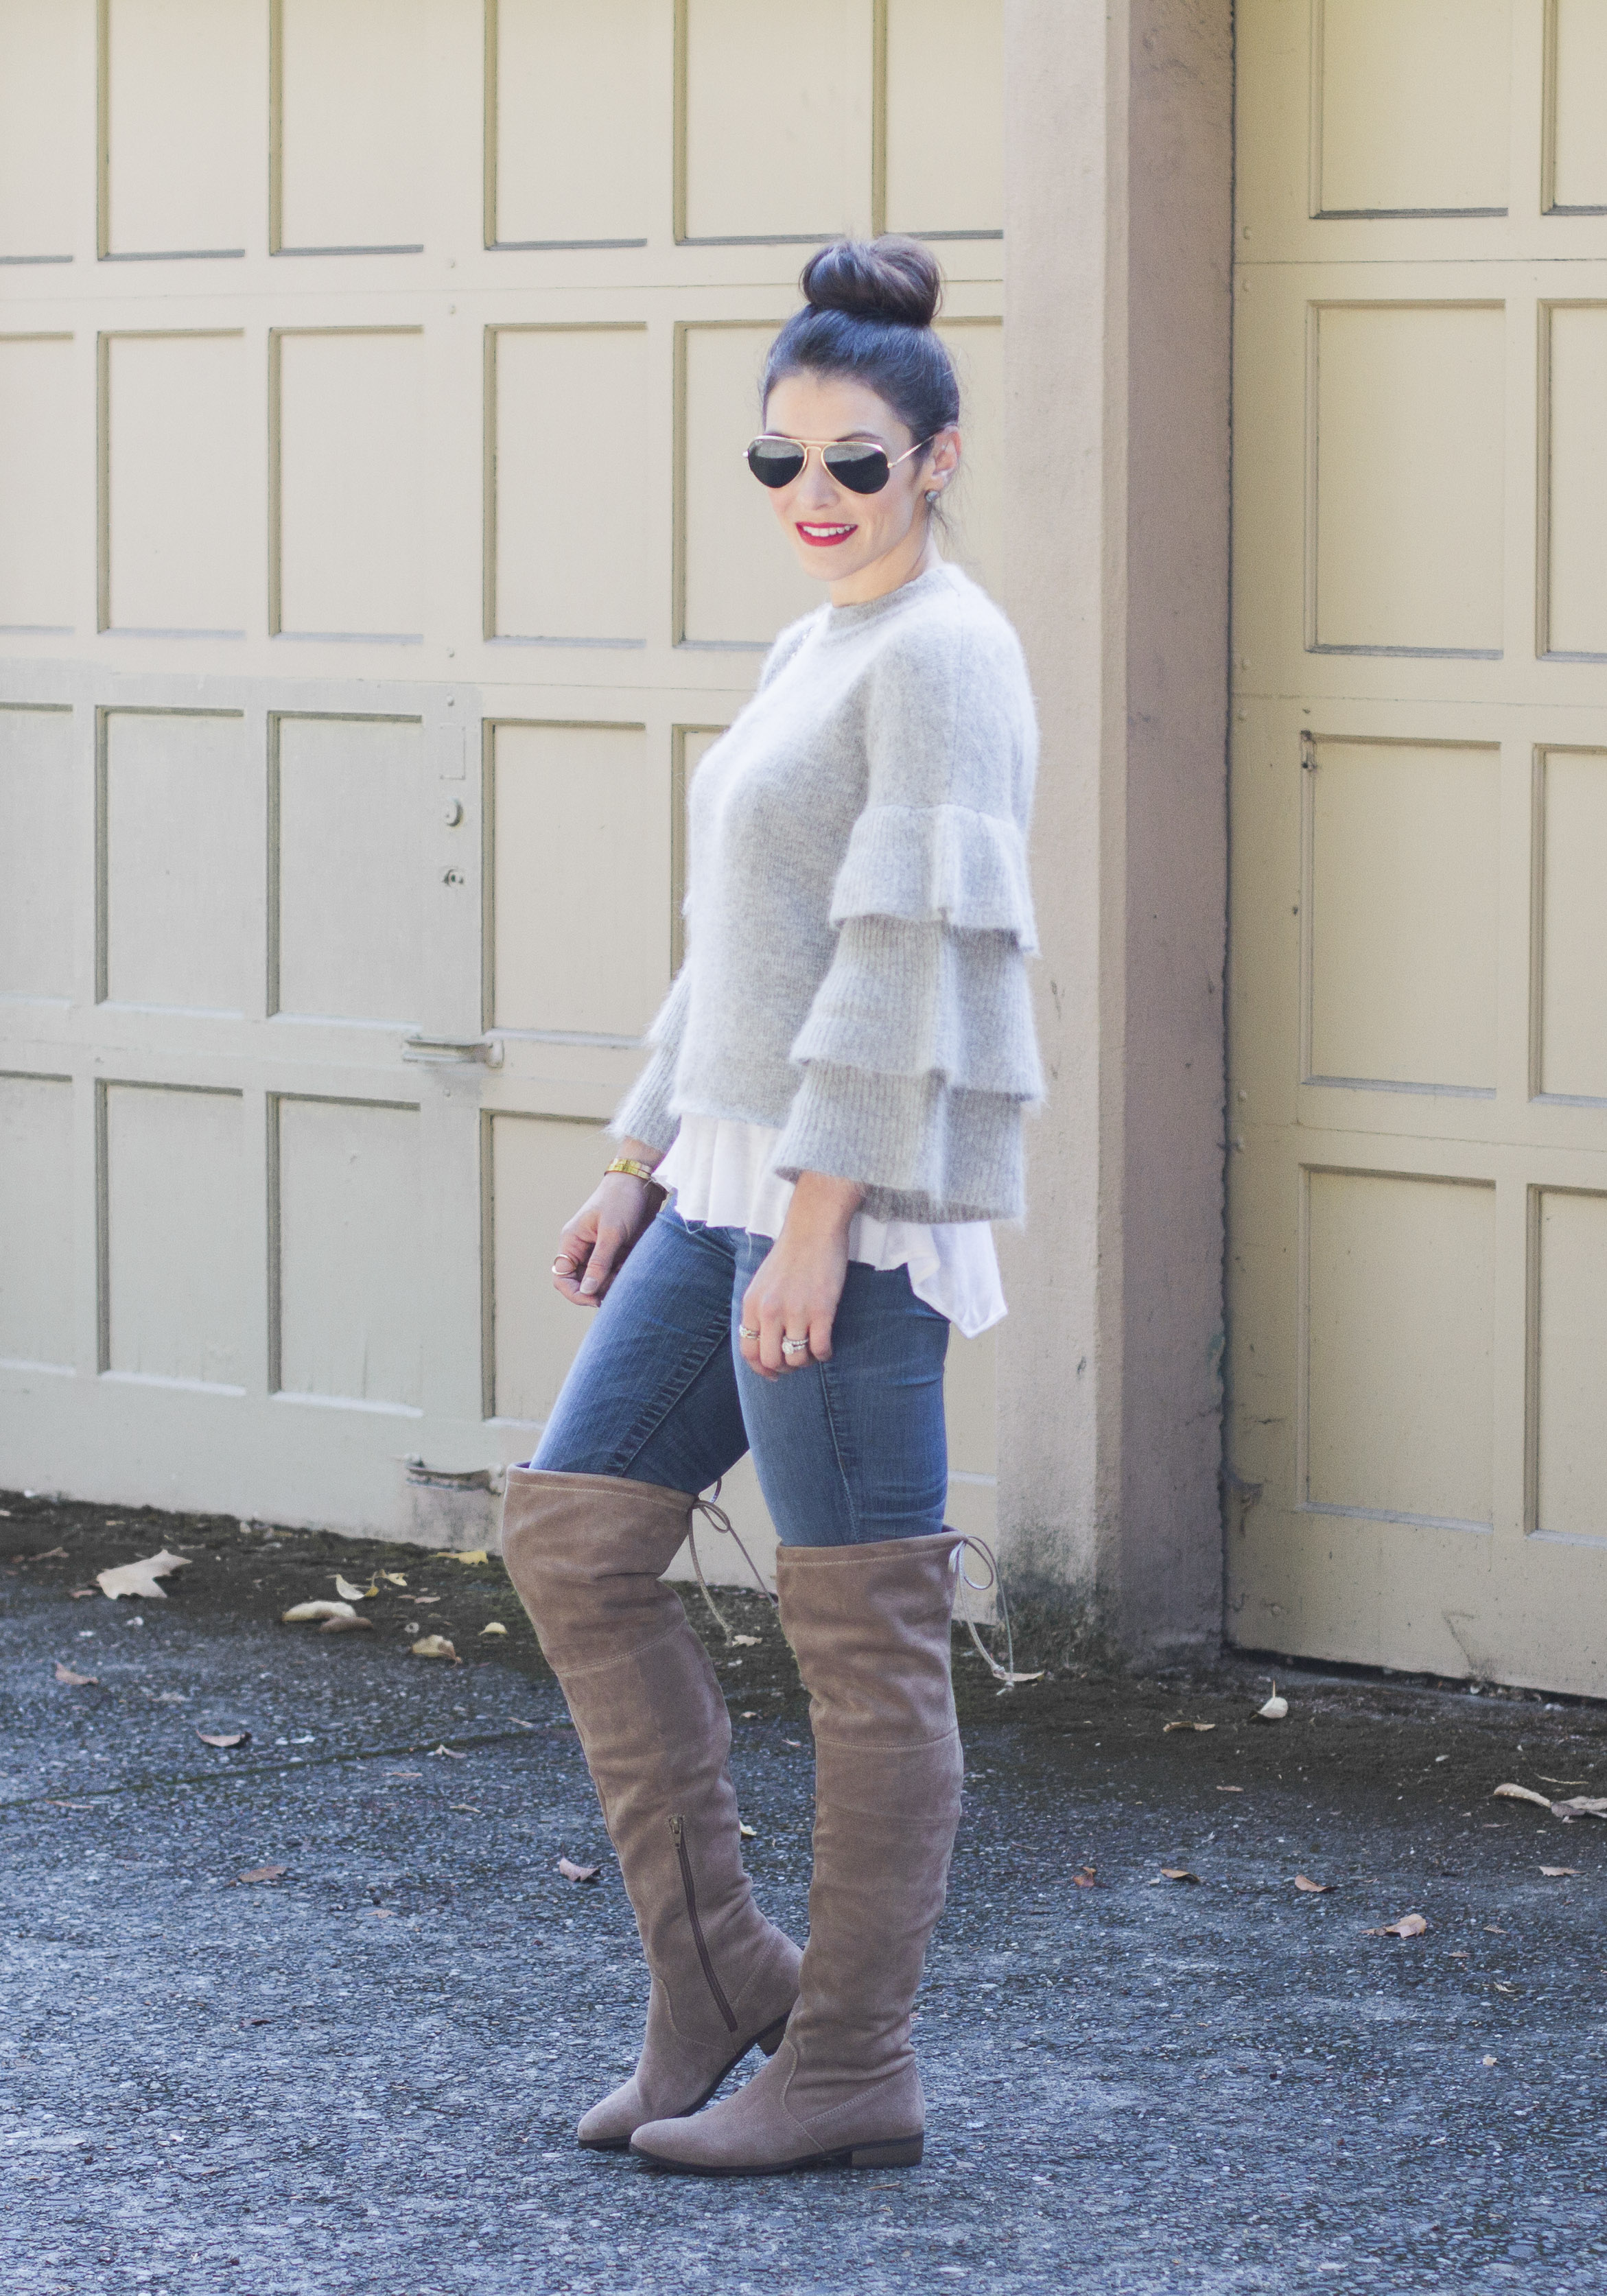 Cute Fall 2016 Outfits: Endless Rose Ruffle Exaggerated Sleeve Sweater, Skinny Jeans, Sole Society Valencia Over The Knee Boots, & Vintage Chanel Handbag.